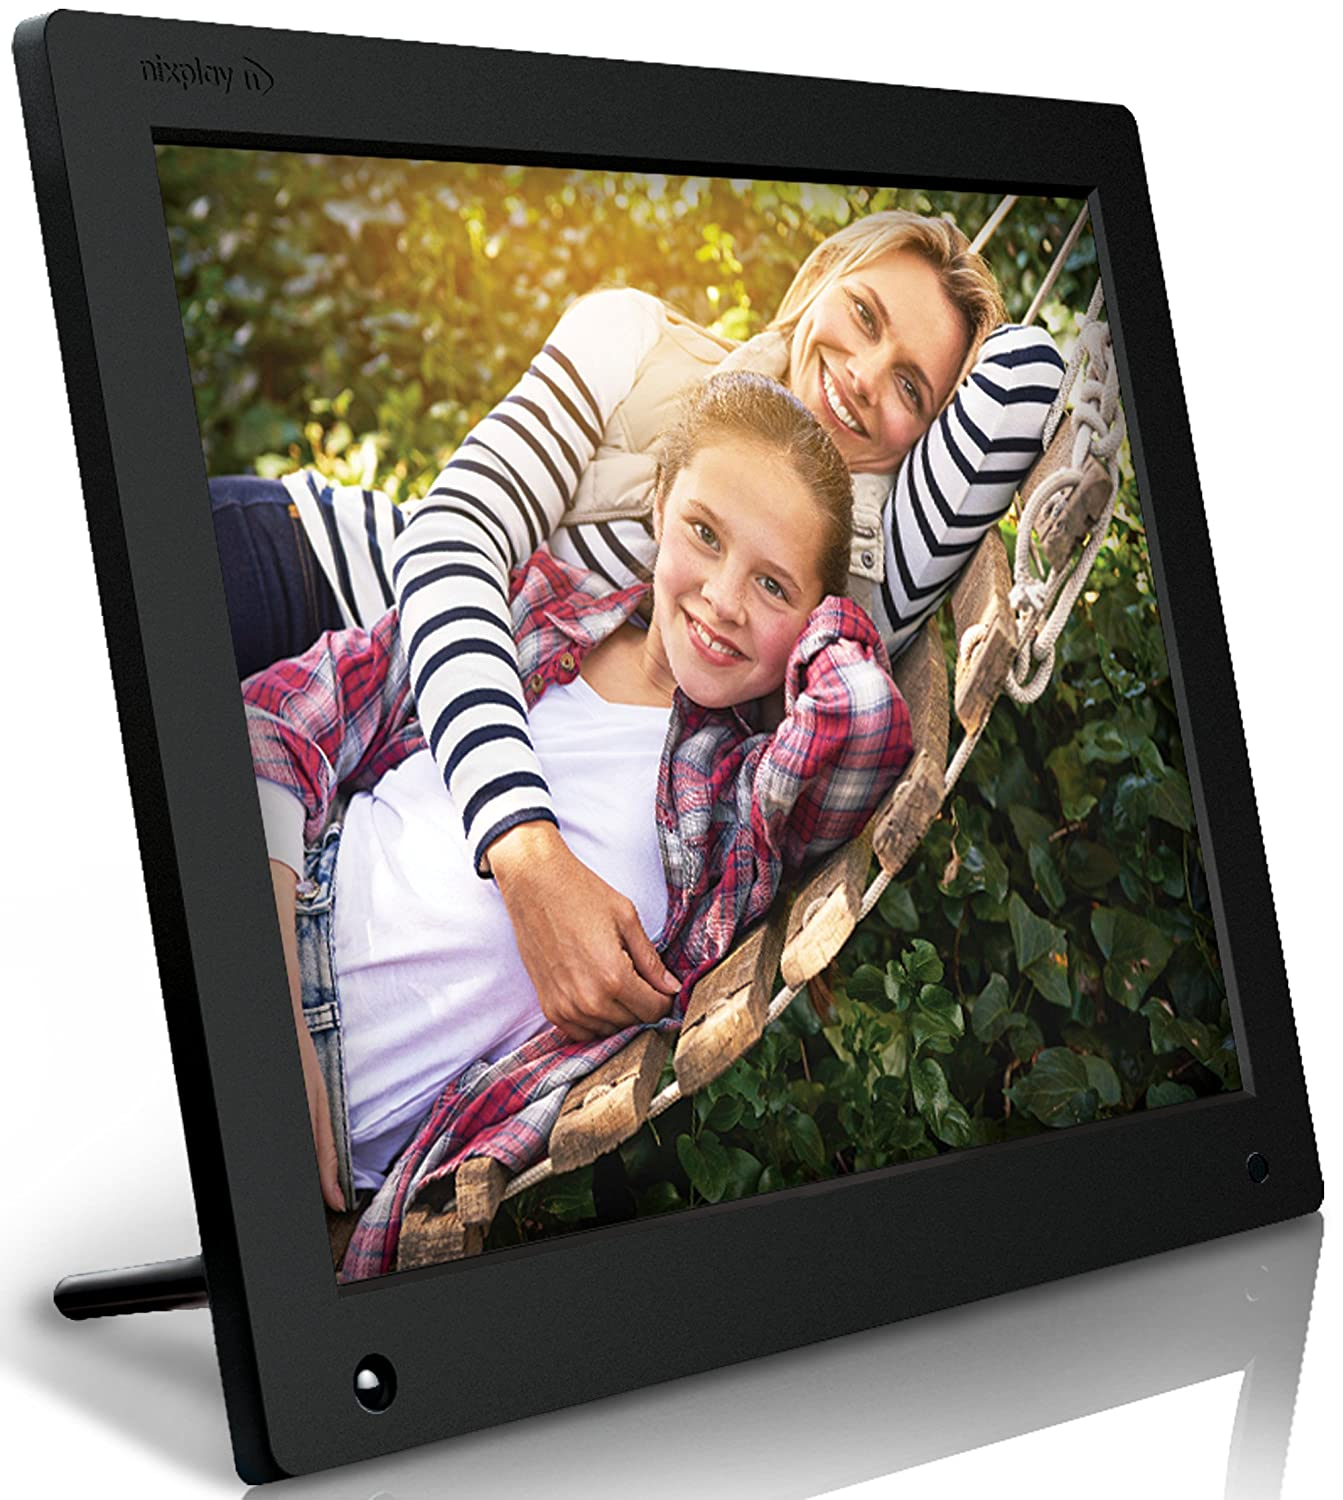 Amazon nixplay original 15 inch wifi cloud digital photo amazon nixplay original 15 inch wifi cloud digital photo frame iphone android app email facebook dropbox instagram picasa w15a camera solutioingenieria